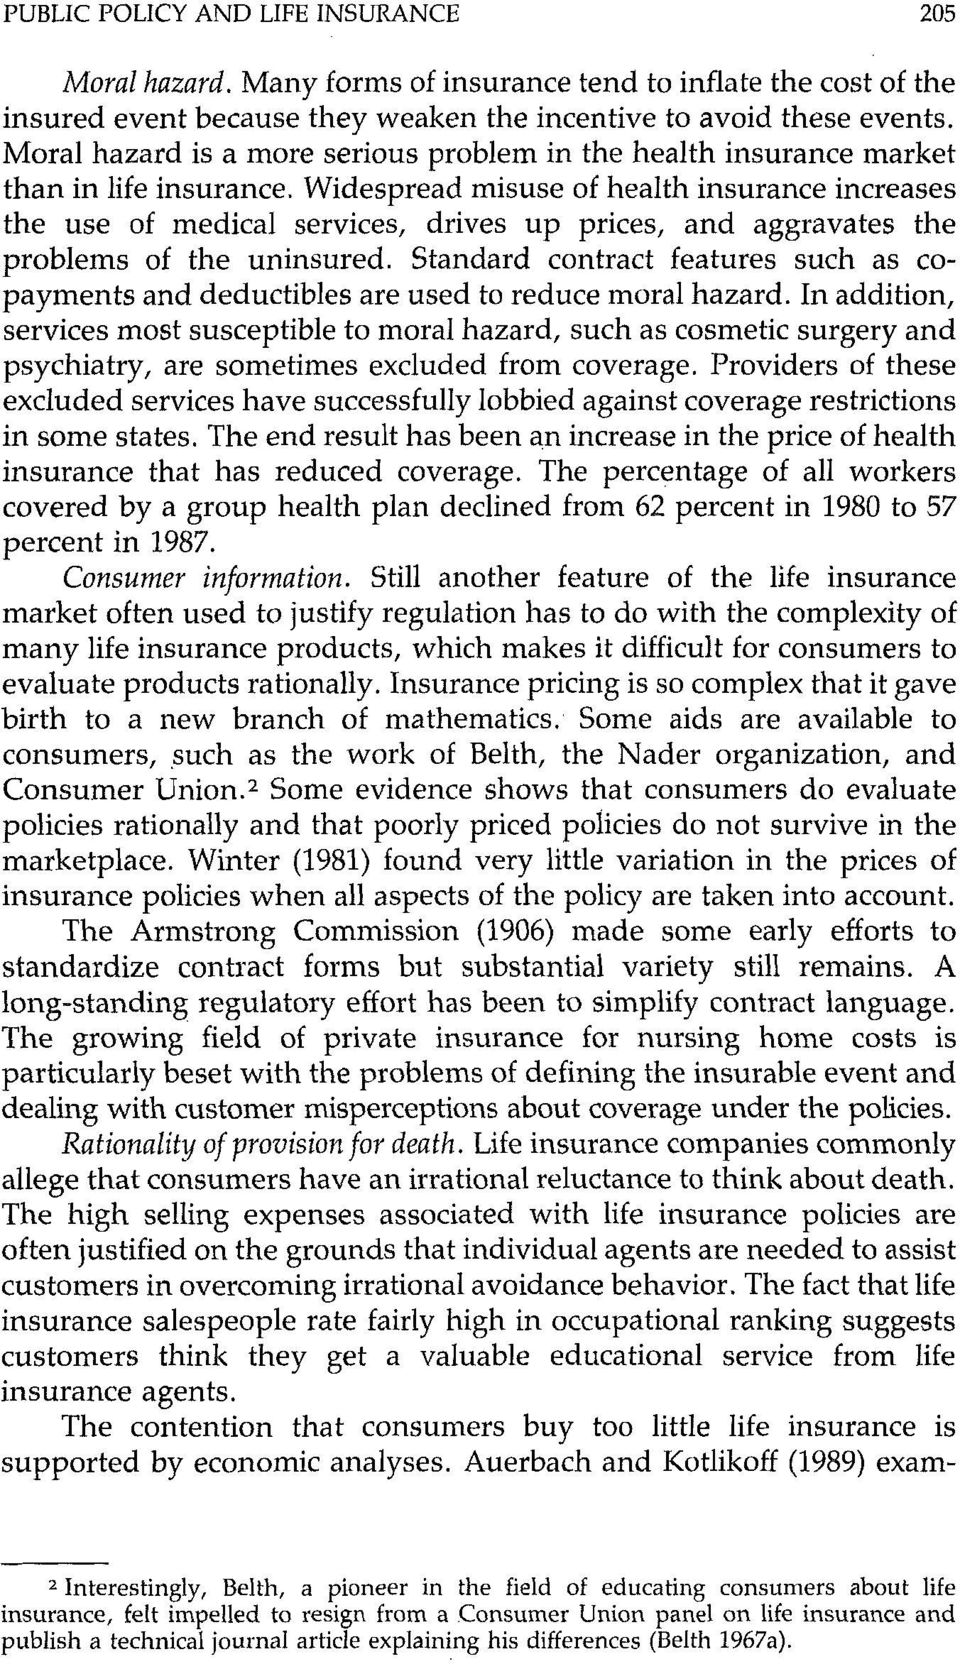 Widespread misuse of health insurance increases the use of medical services, drives up prices, and aggravates the problems of the uninsured.